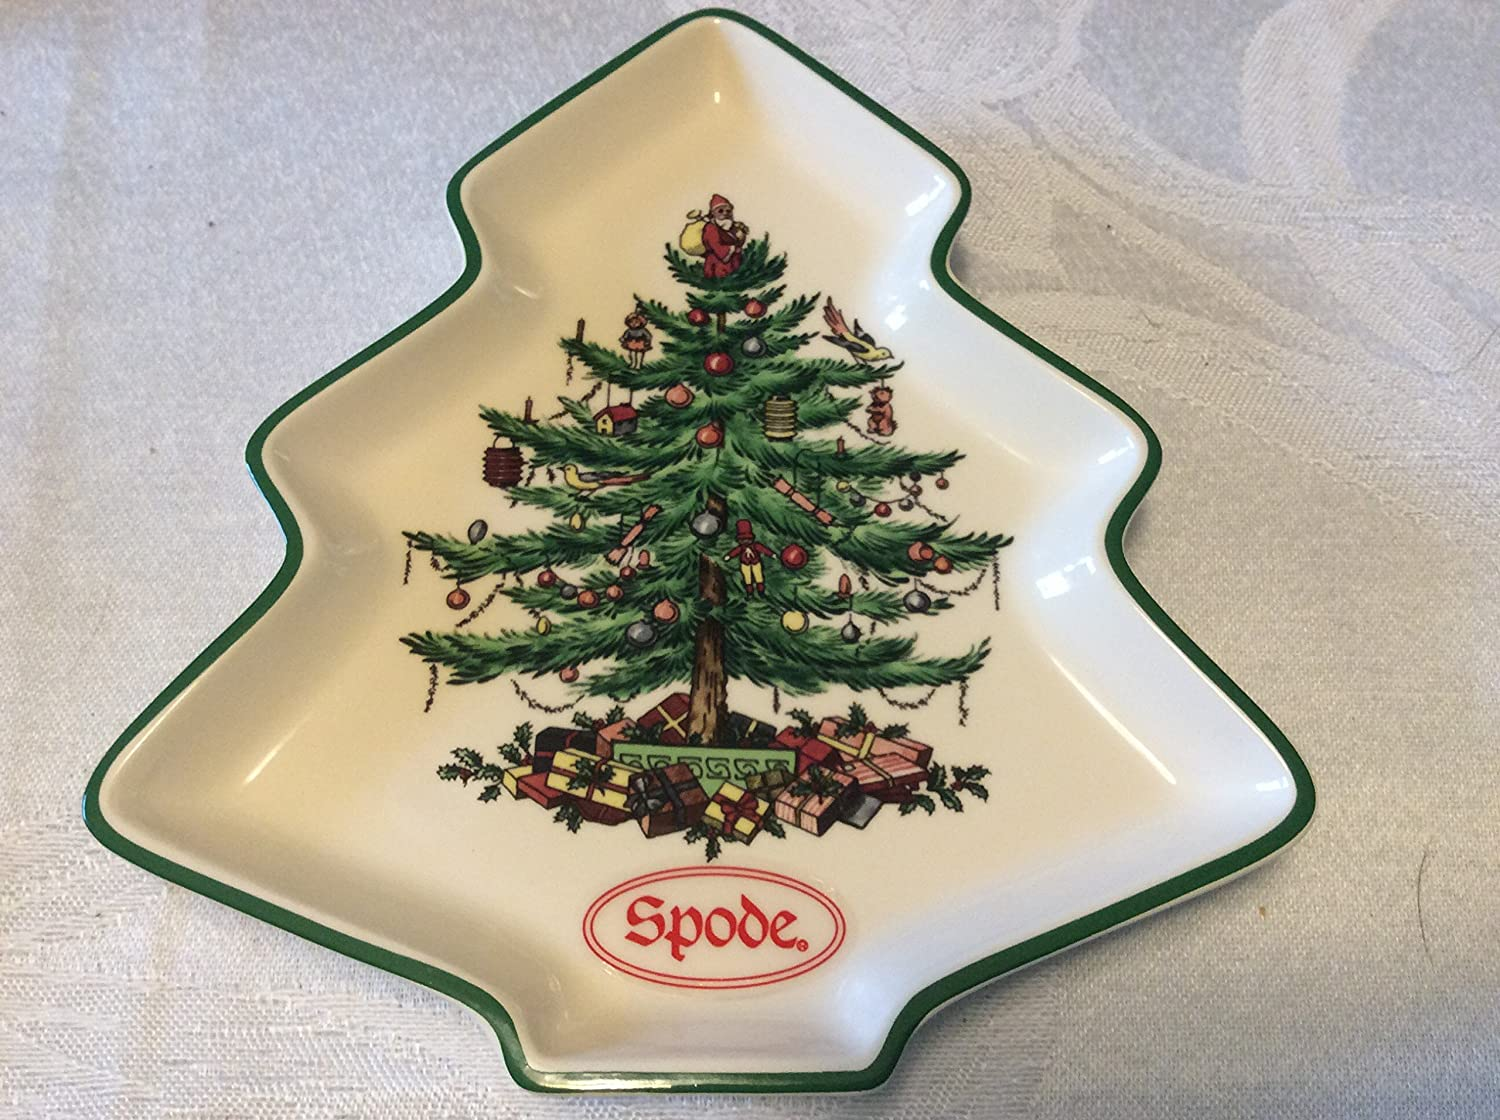 Spode Christmas Tree Bathroom Accessories